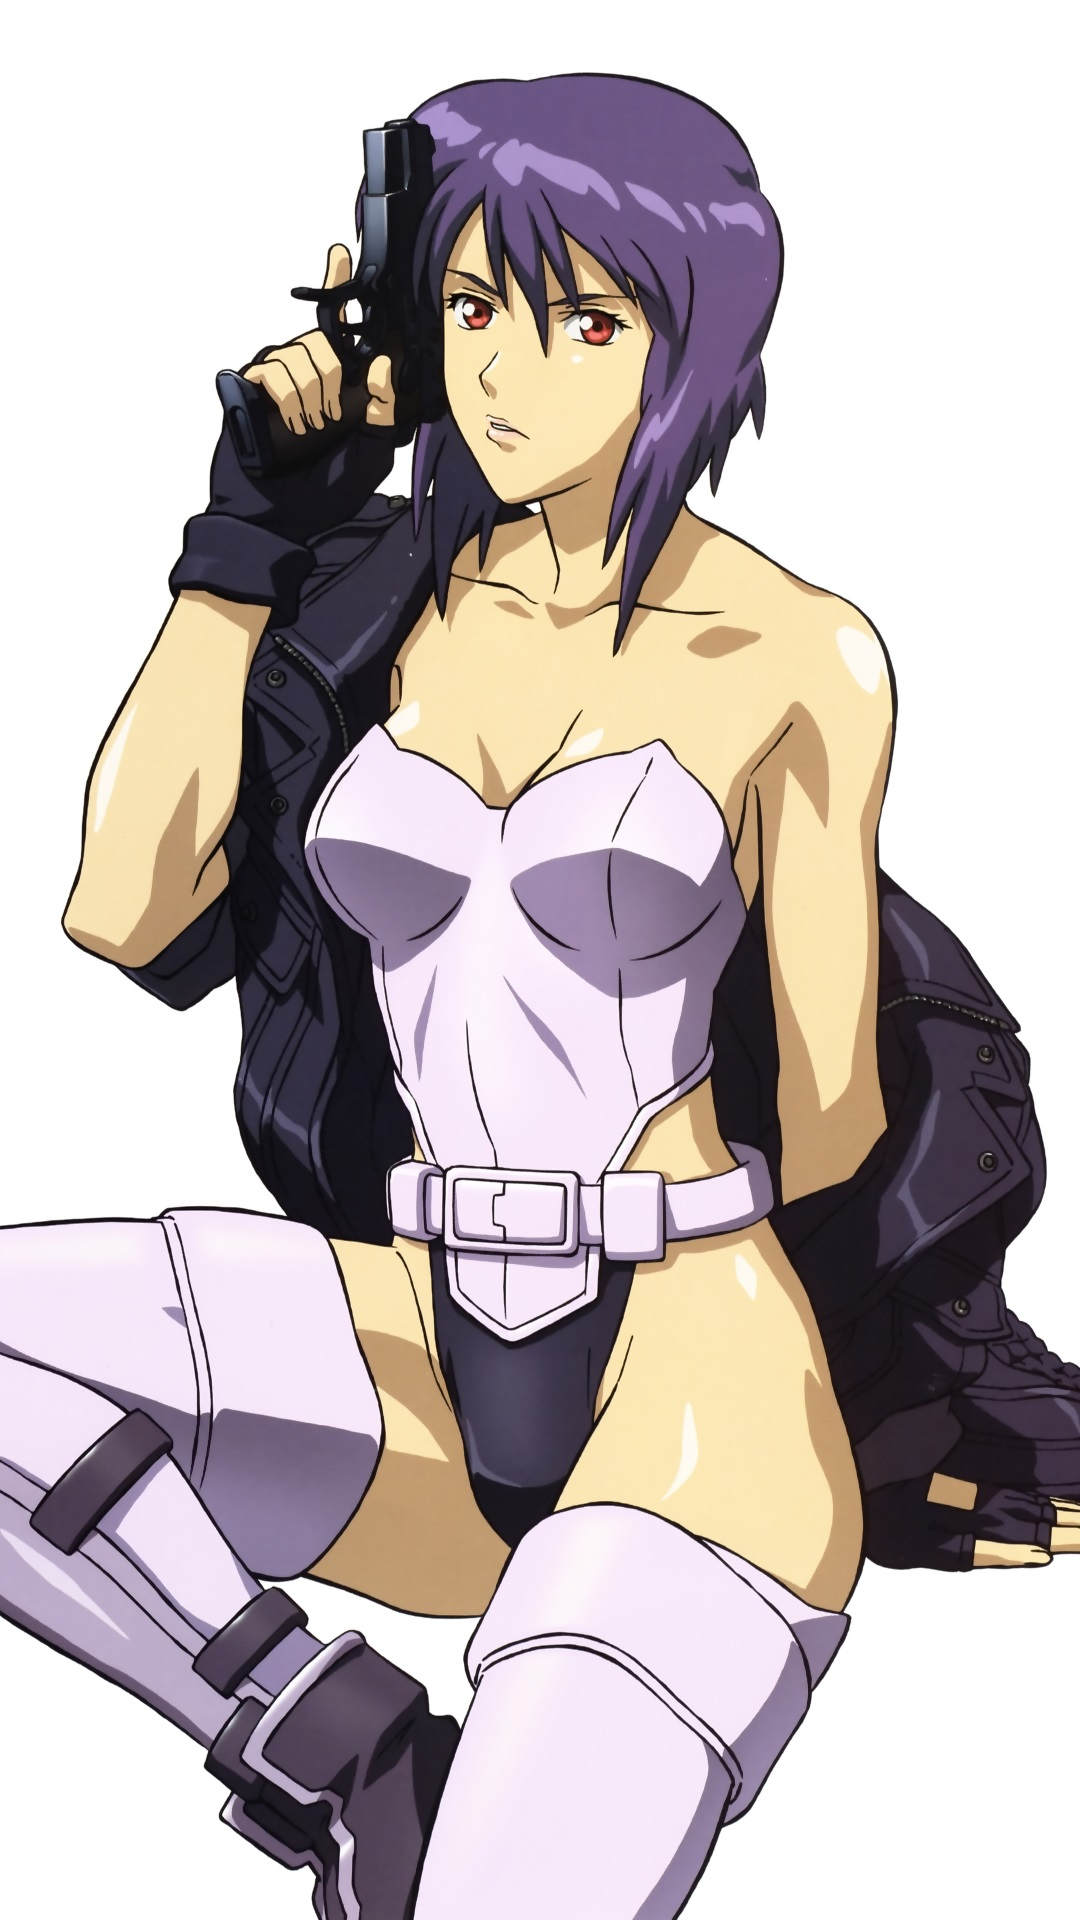 Ghost In The Shell Motoko Kusanagi Major Stand Alone Complex 1286838 Hd Wallpaper Backgrounds Download